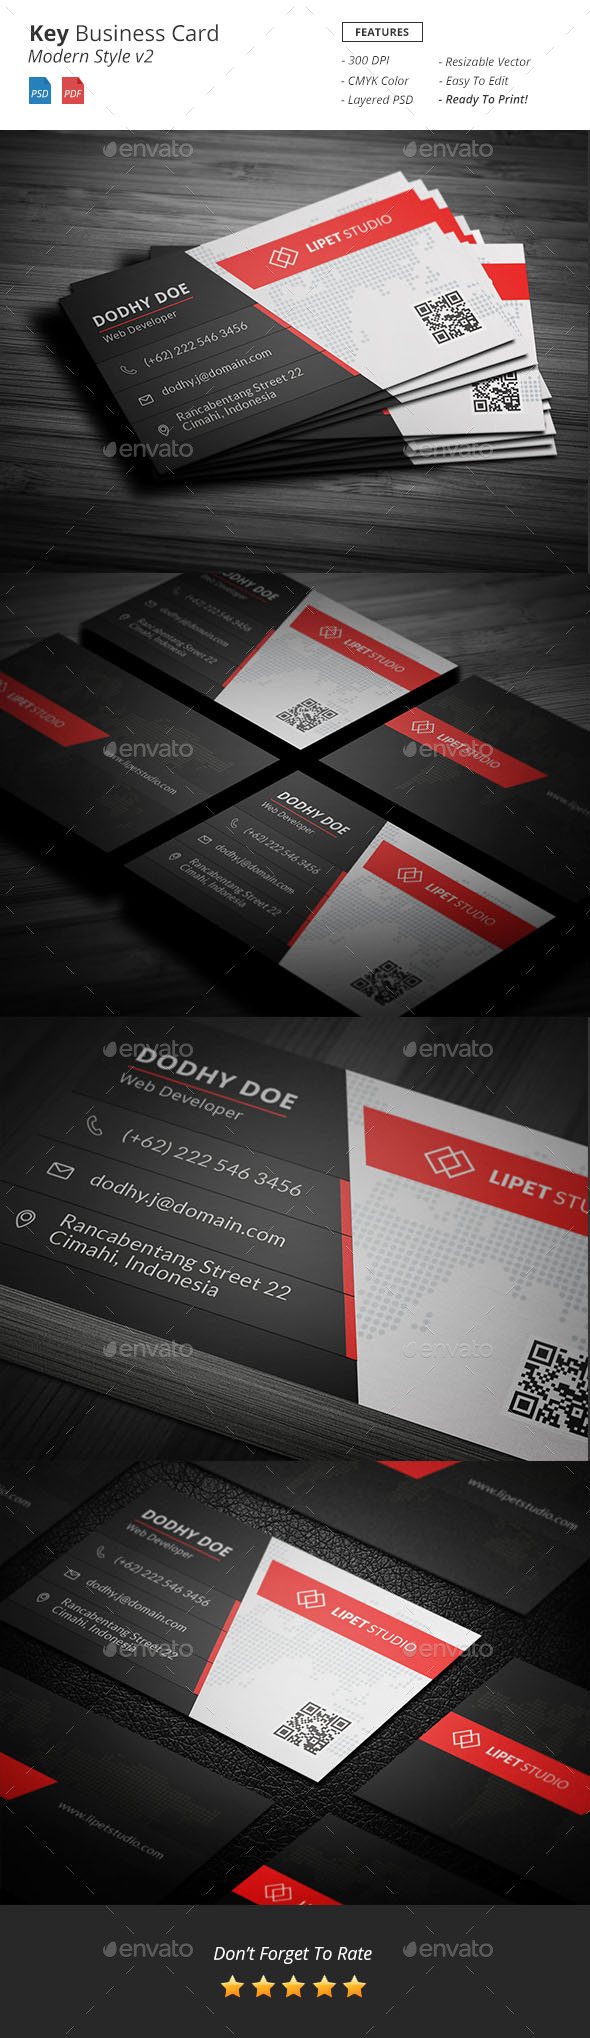 Key - Modern Business Card Template v2 - Business Cards Print Templates